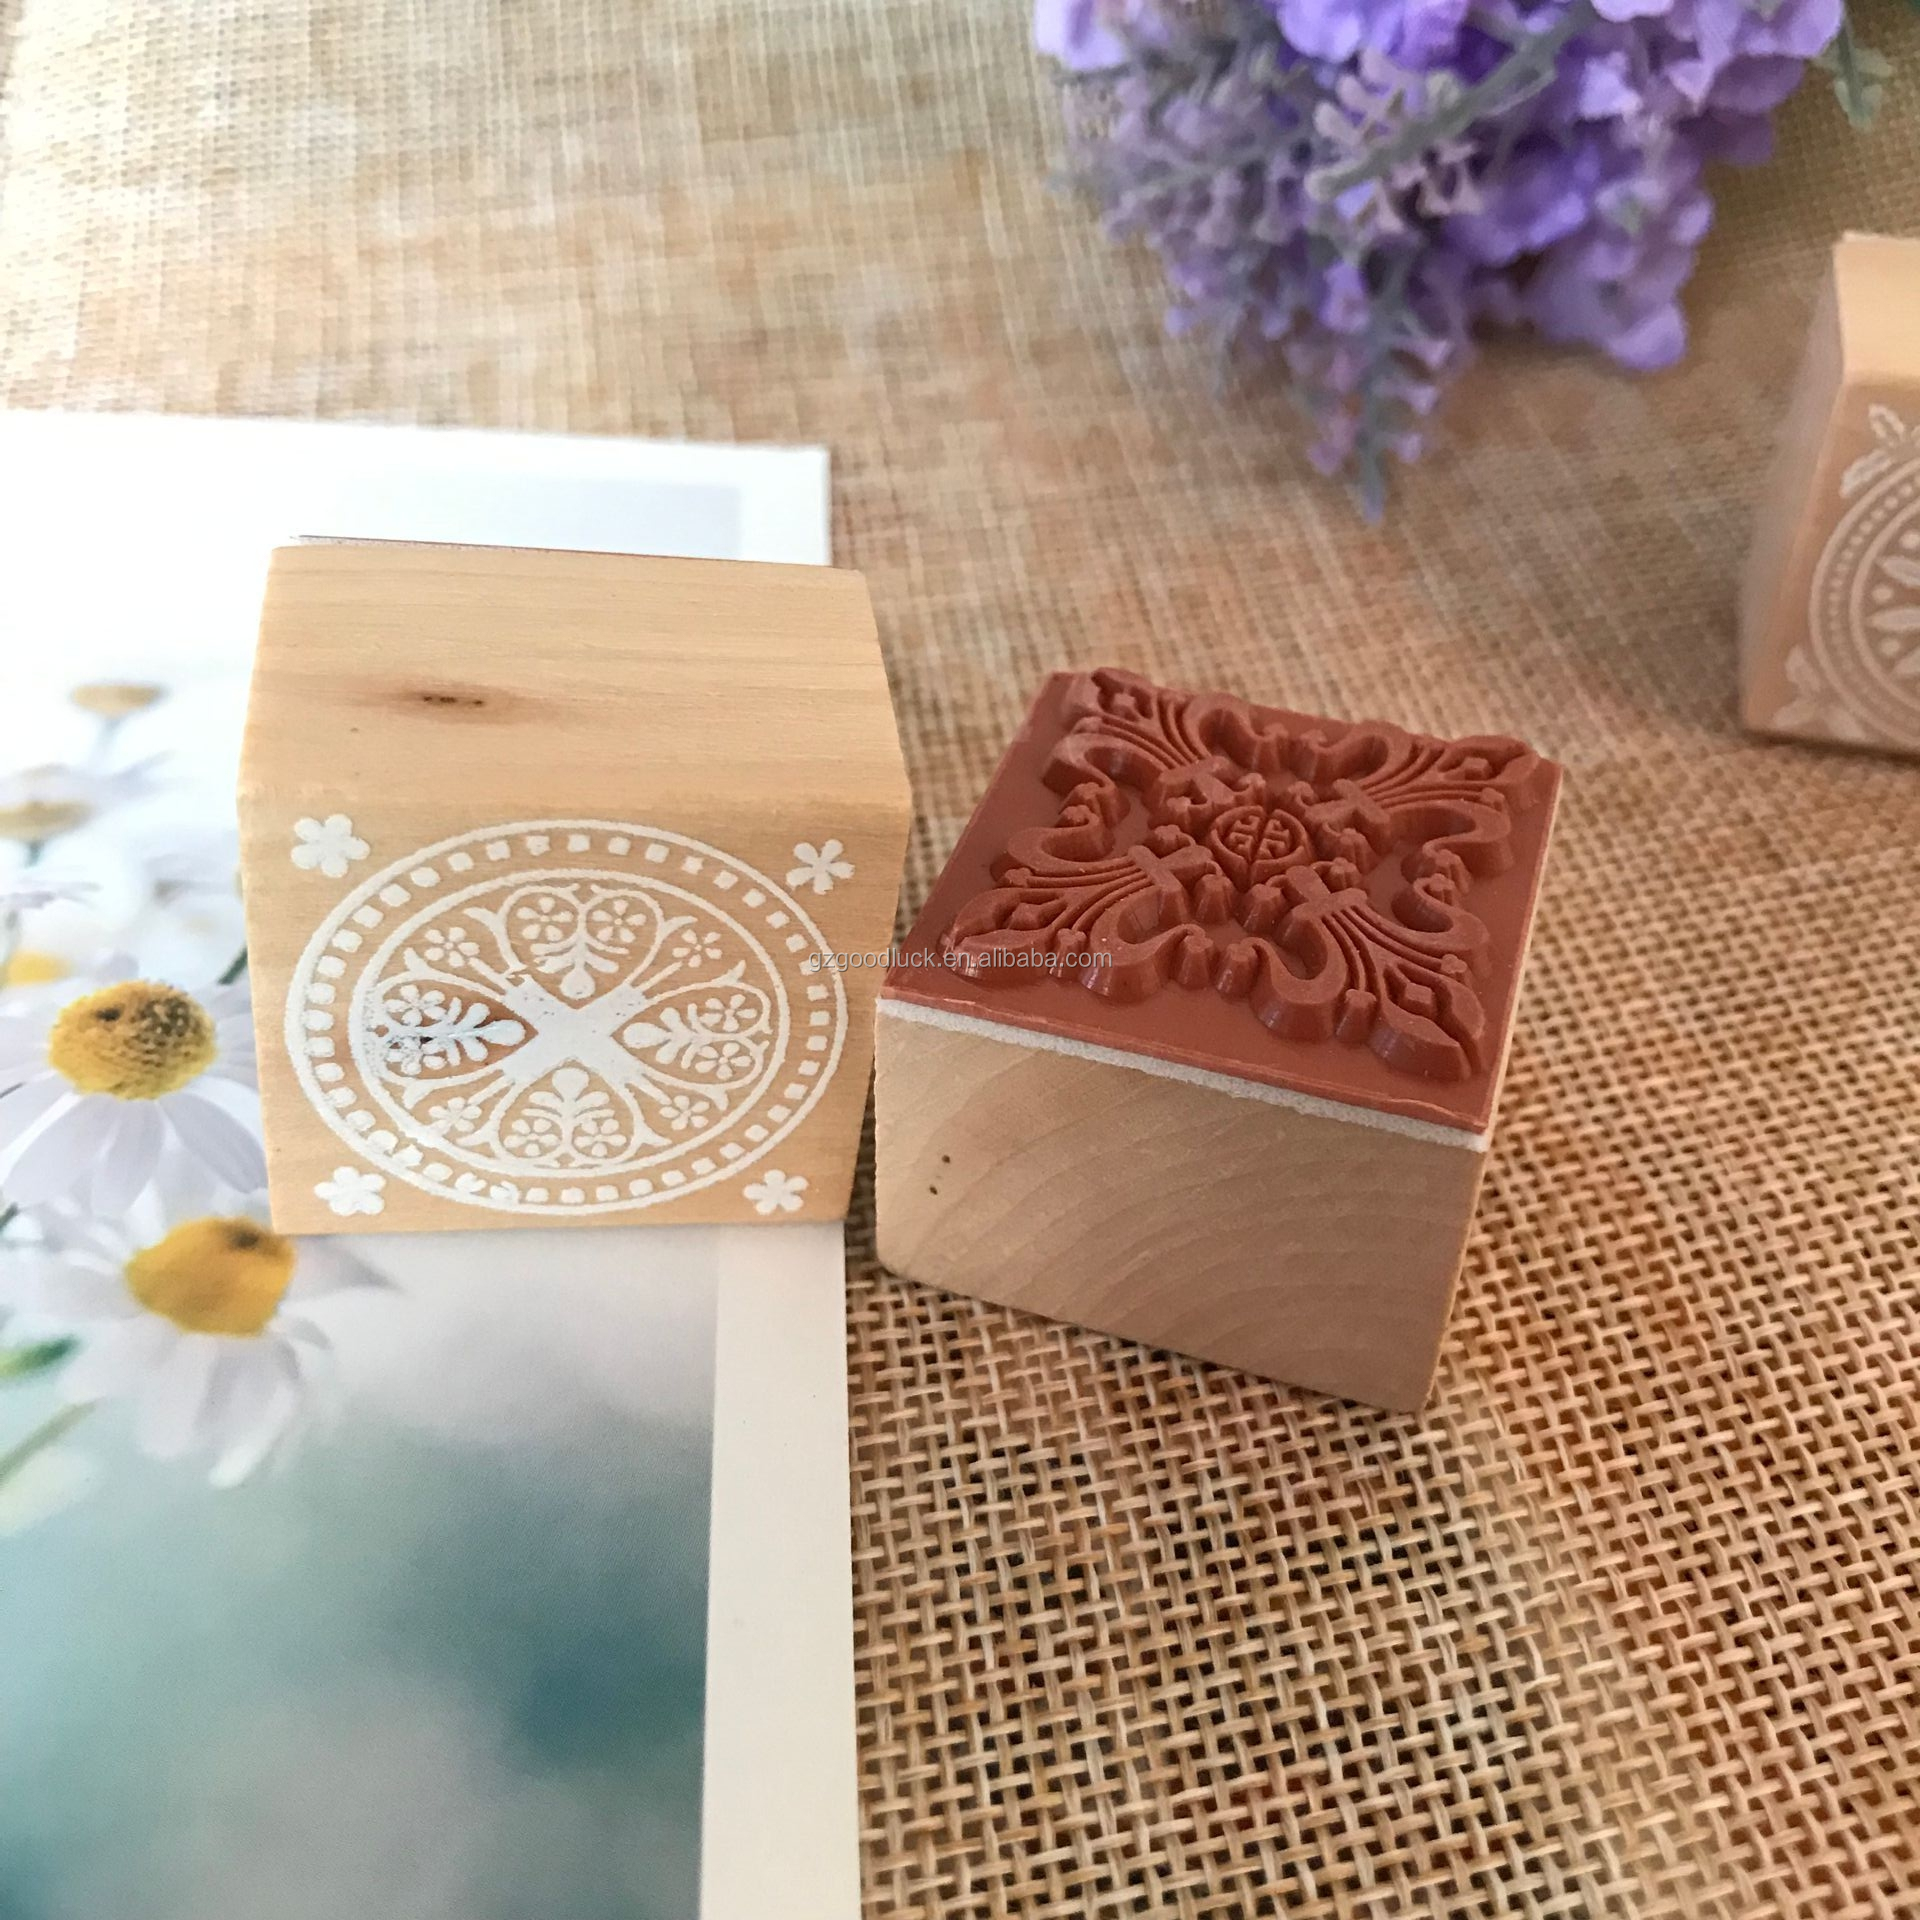 Wooden Rubber Stamp Manufacturers Supporting Custom Wooden Rubber Stamp For You